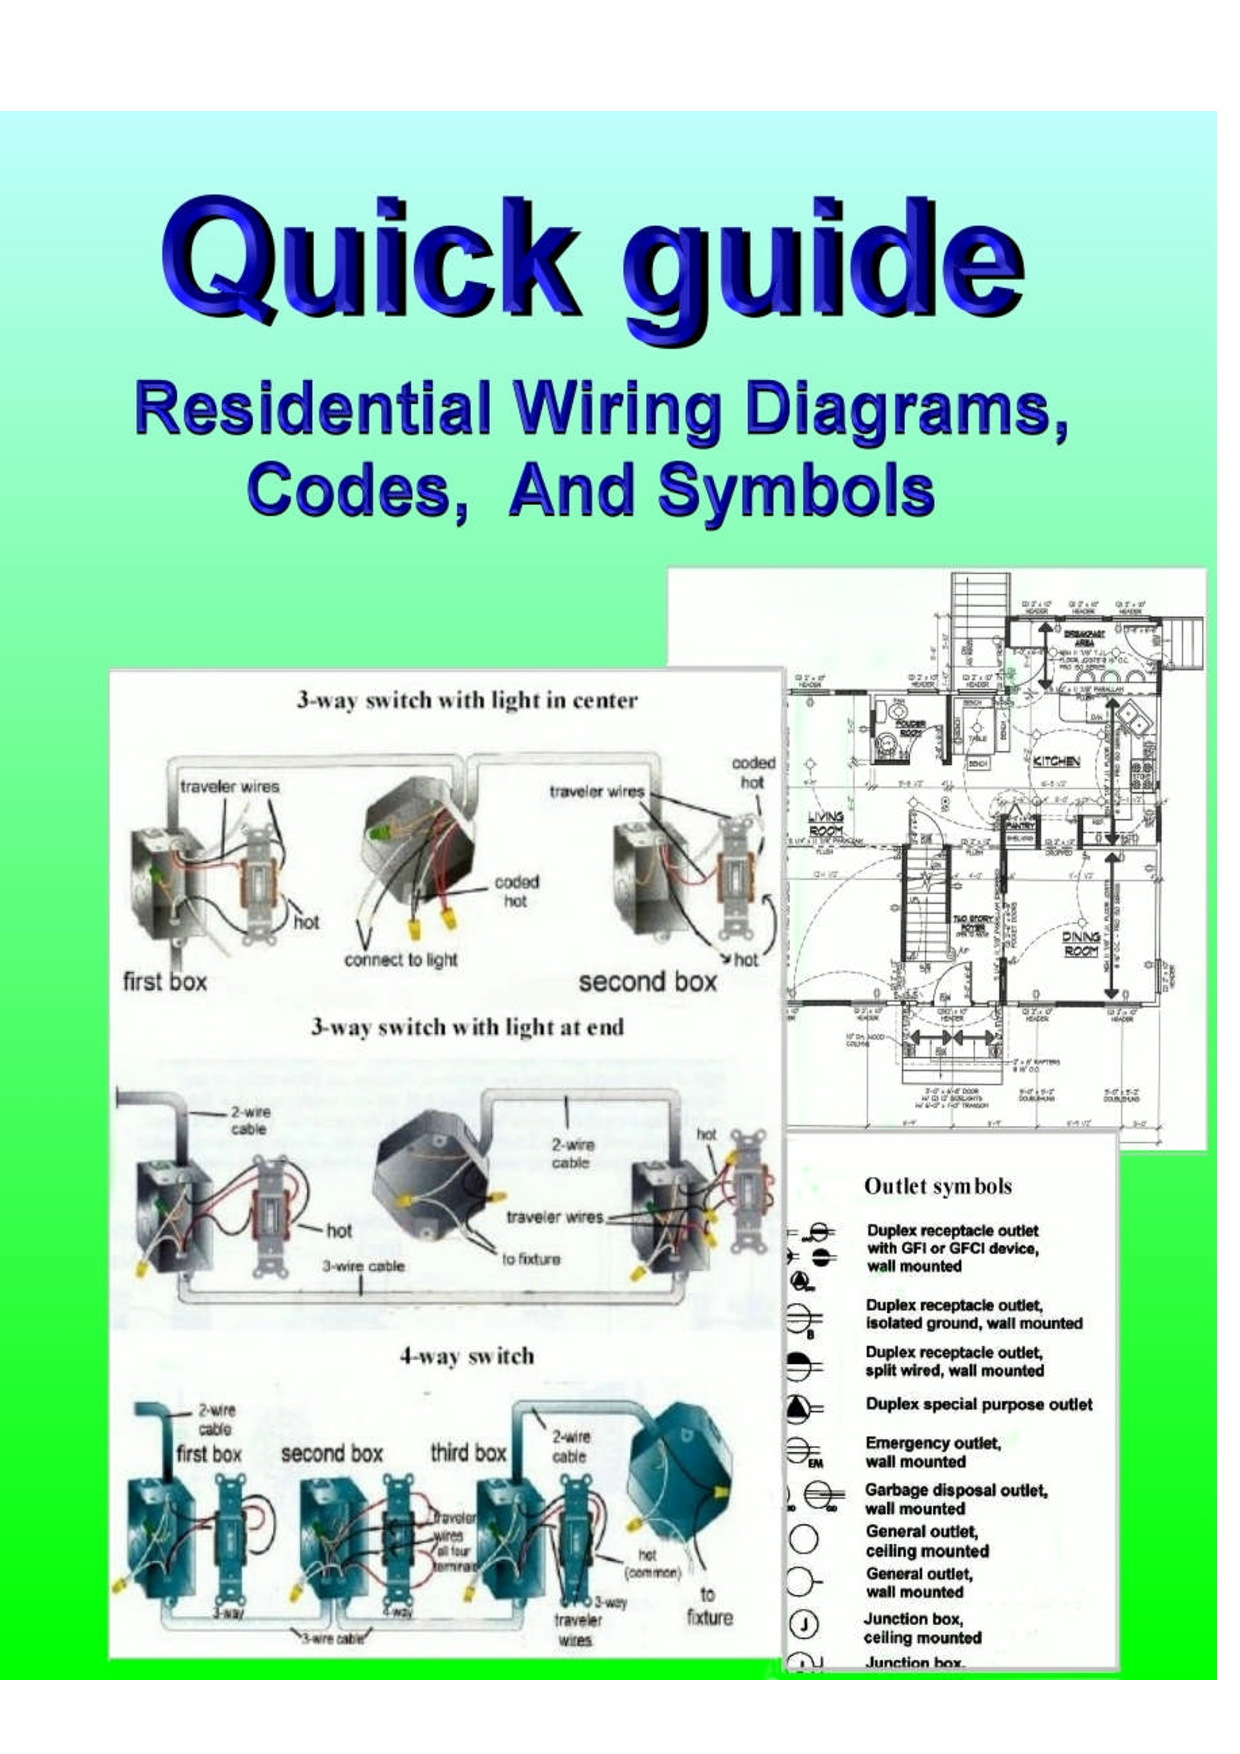 Home Electrical Wiring Diagramspdf Download Legal Documents 39 A 2 Way Light Switch Pages With Many Diagrams And Illustrations Step By Guide